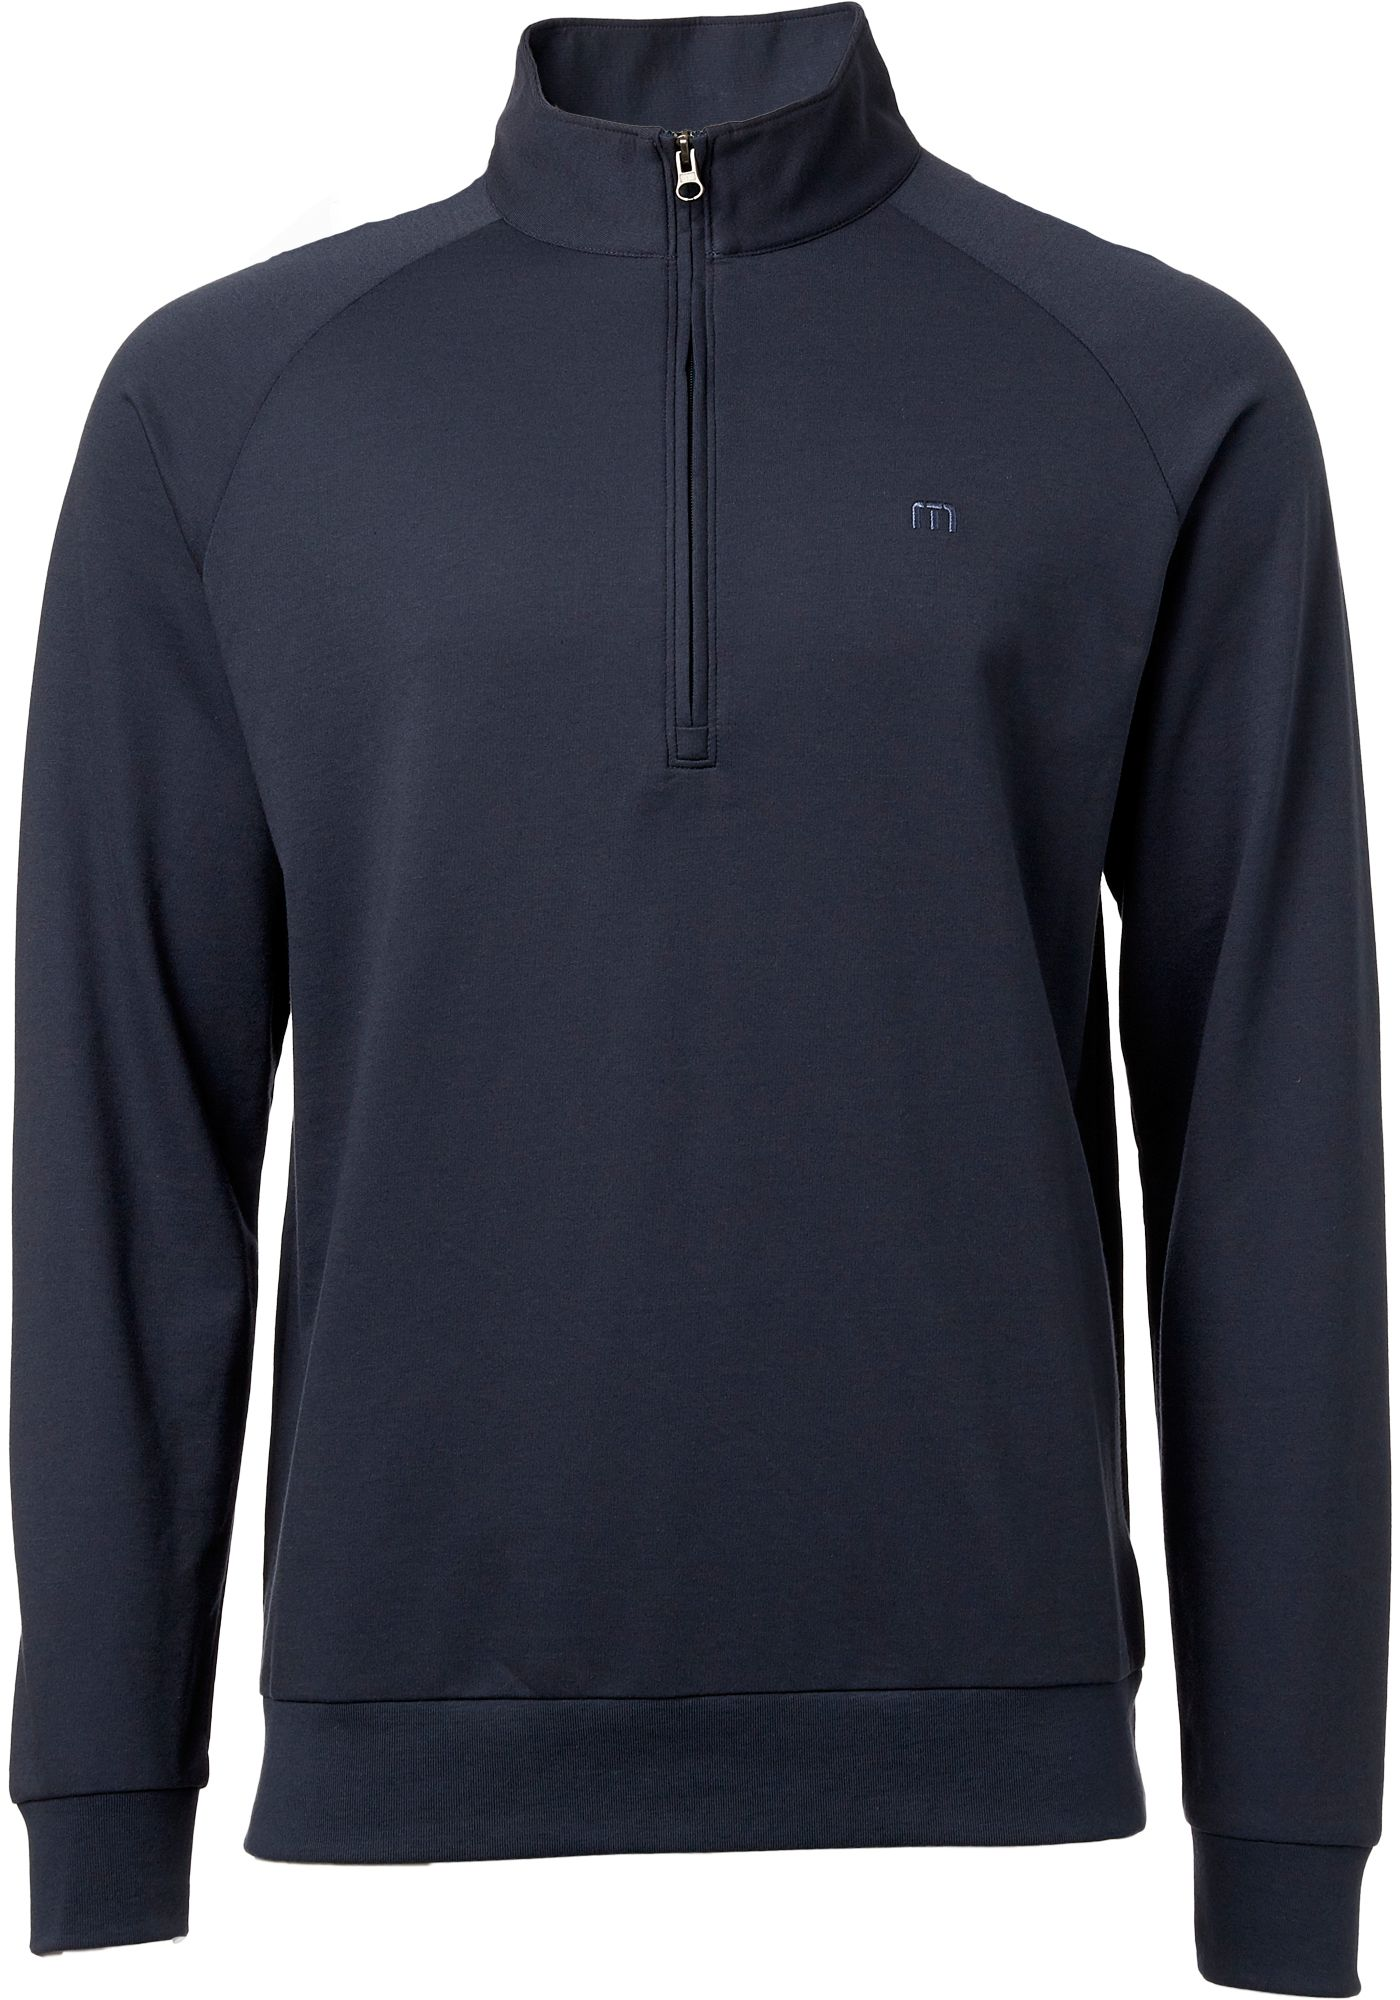 TravisMathew Men's Newton ¼ Zip Golf Pullover